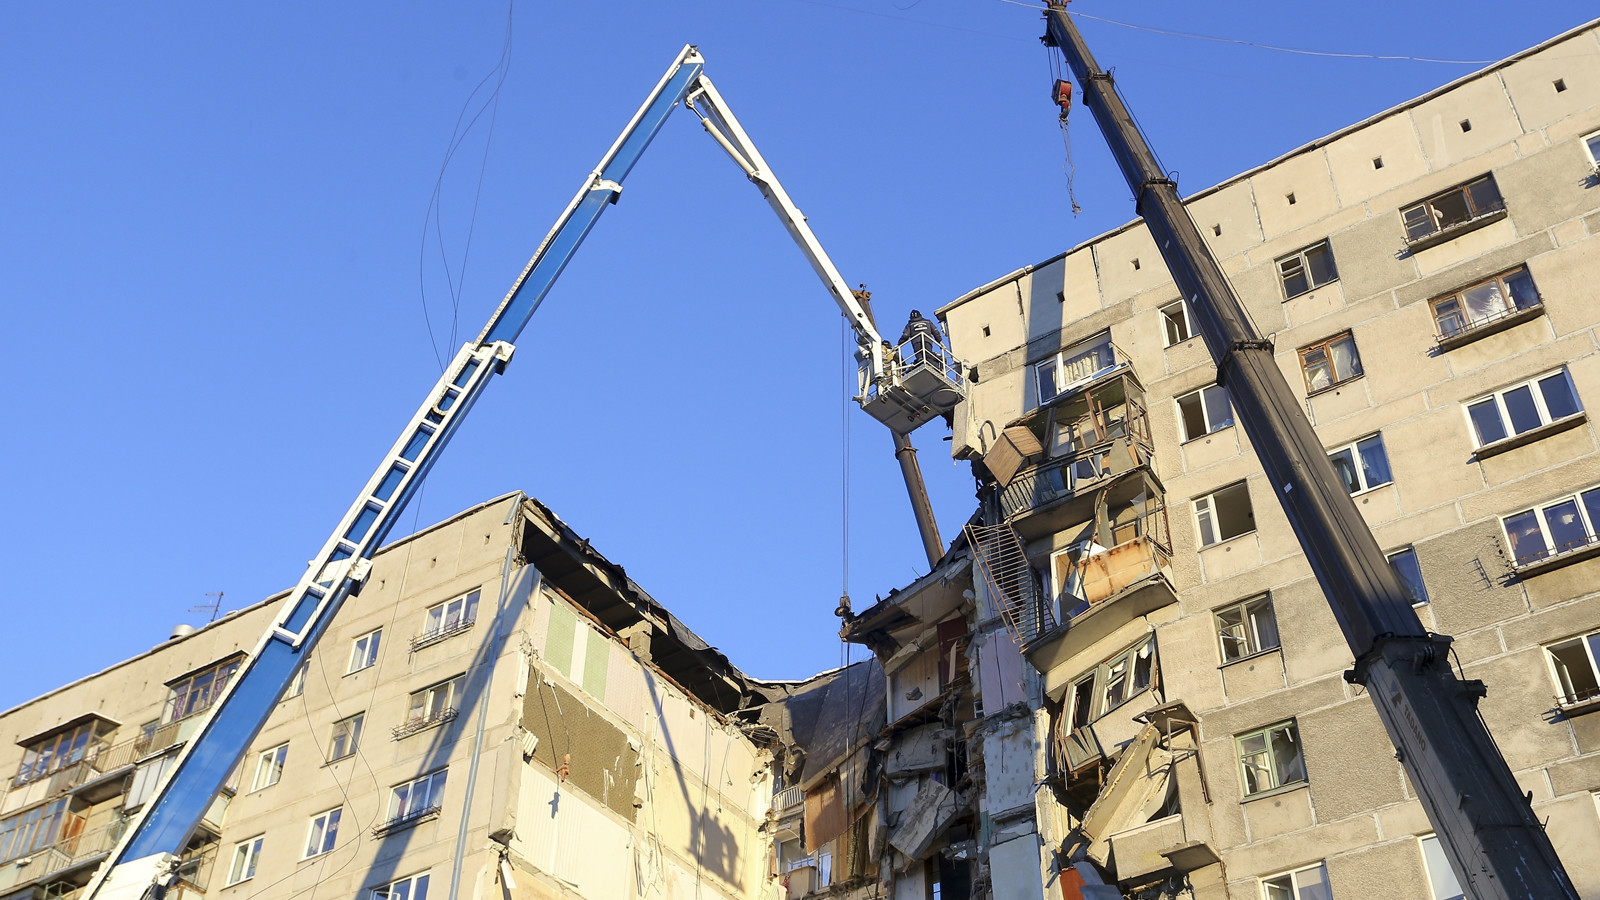 Death toll rises to 21 in Russia apartment collapse